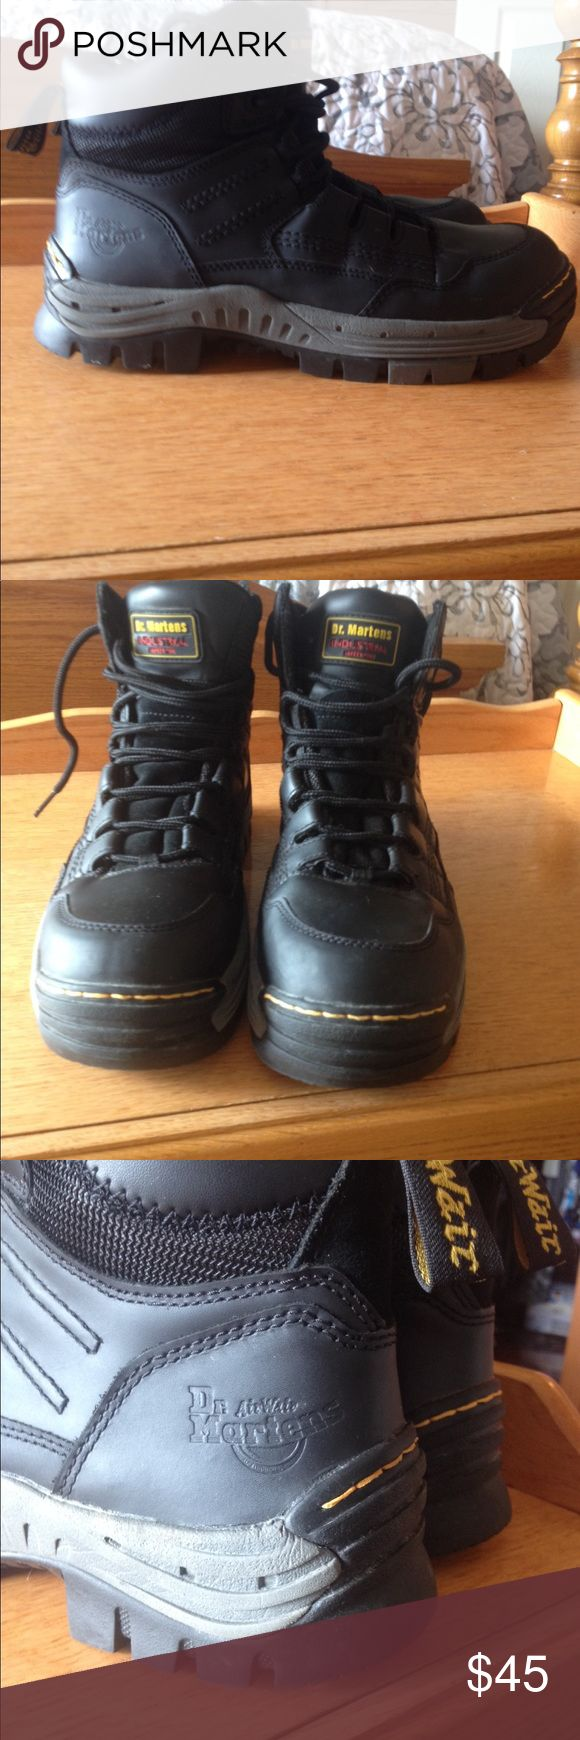 Dr. Martens industrial boots Men's size 9 medium Dr Martens industrial boots. Safety toe, slip resistant, no wear or smell, inserts replaced with Dr Scholls. Make offer if don't like price. Dr Martens Shoes Boots